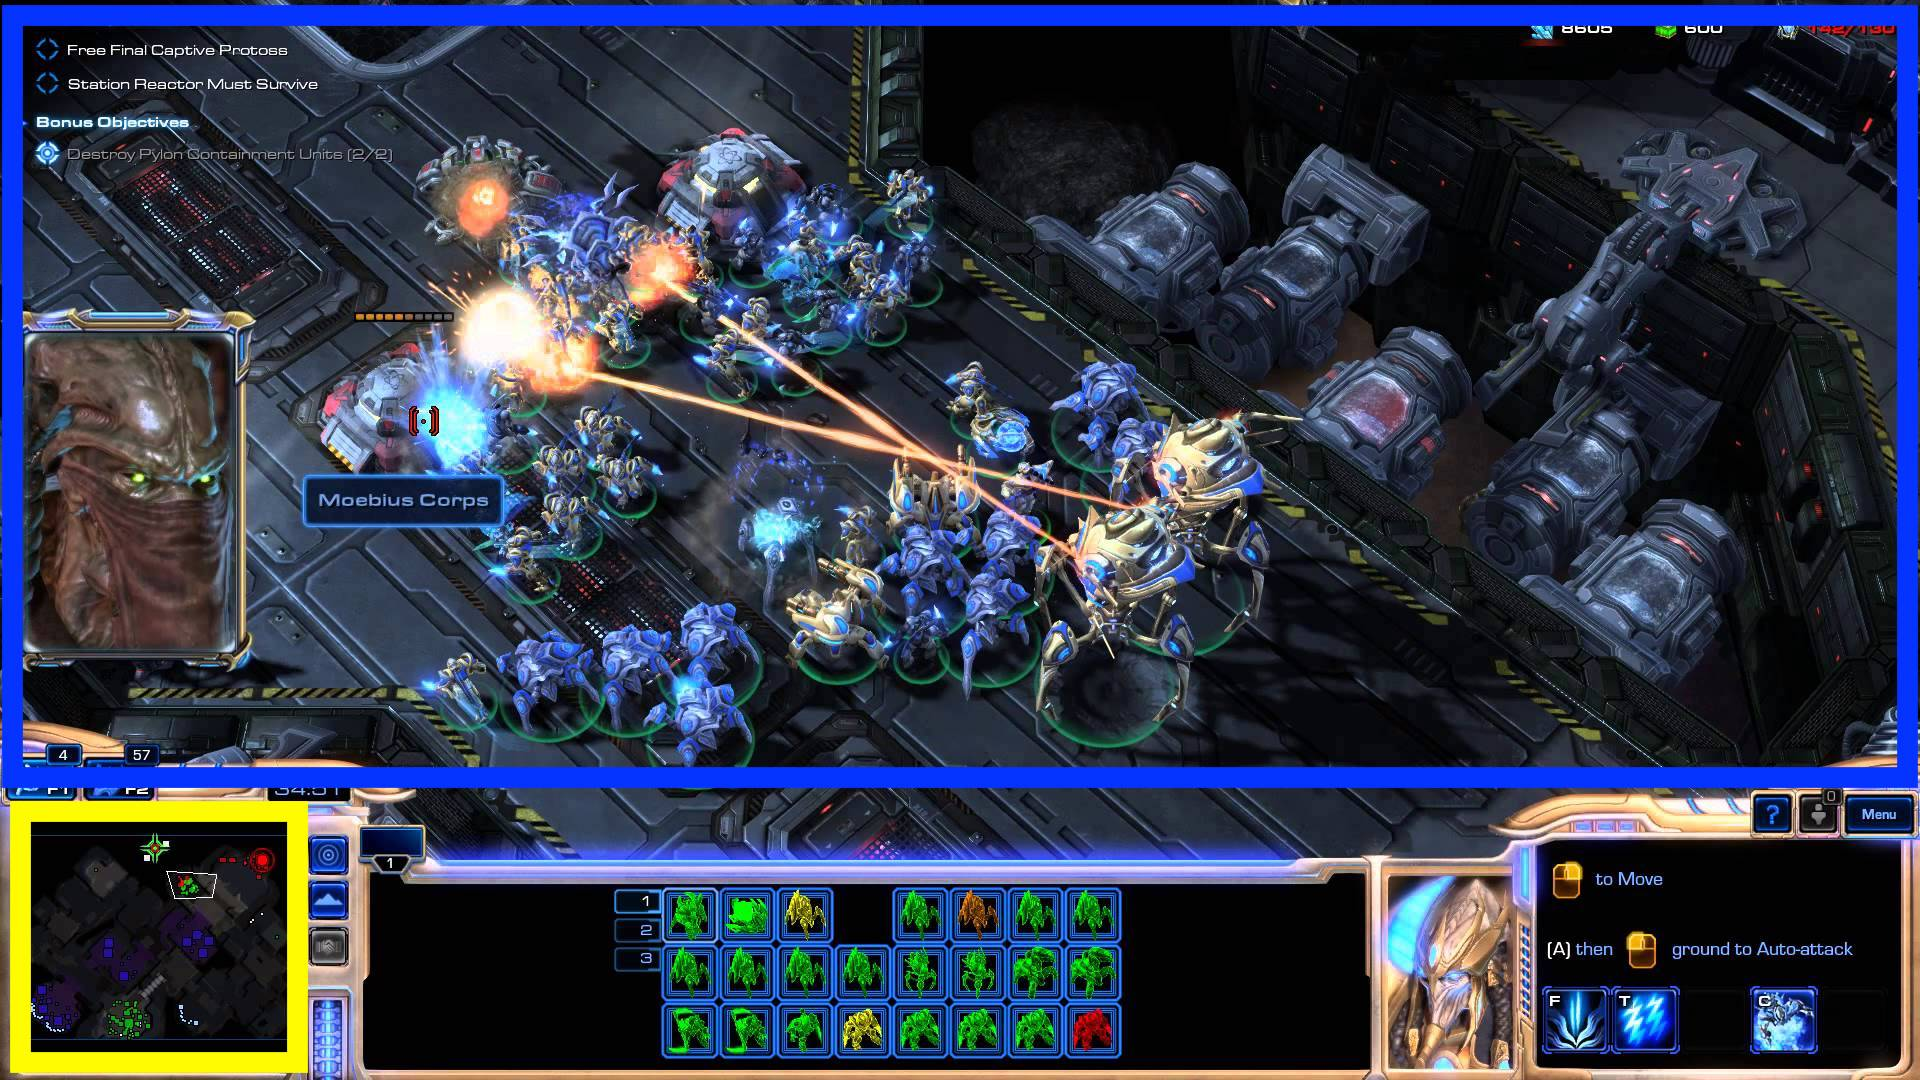 screenshot of starcraft where the main game window is highlighter in blue and the minimap highlighted in yellow